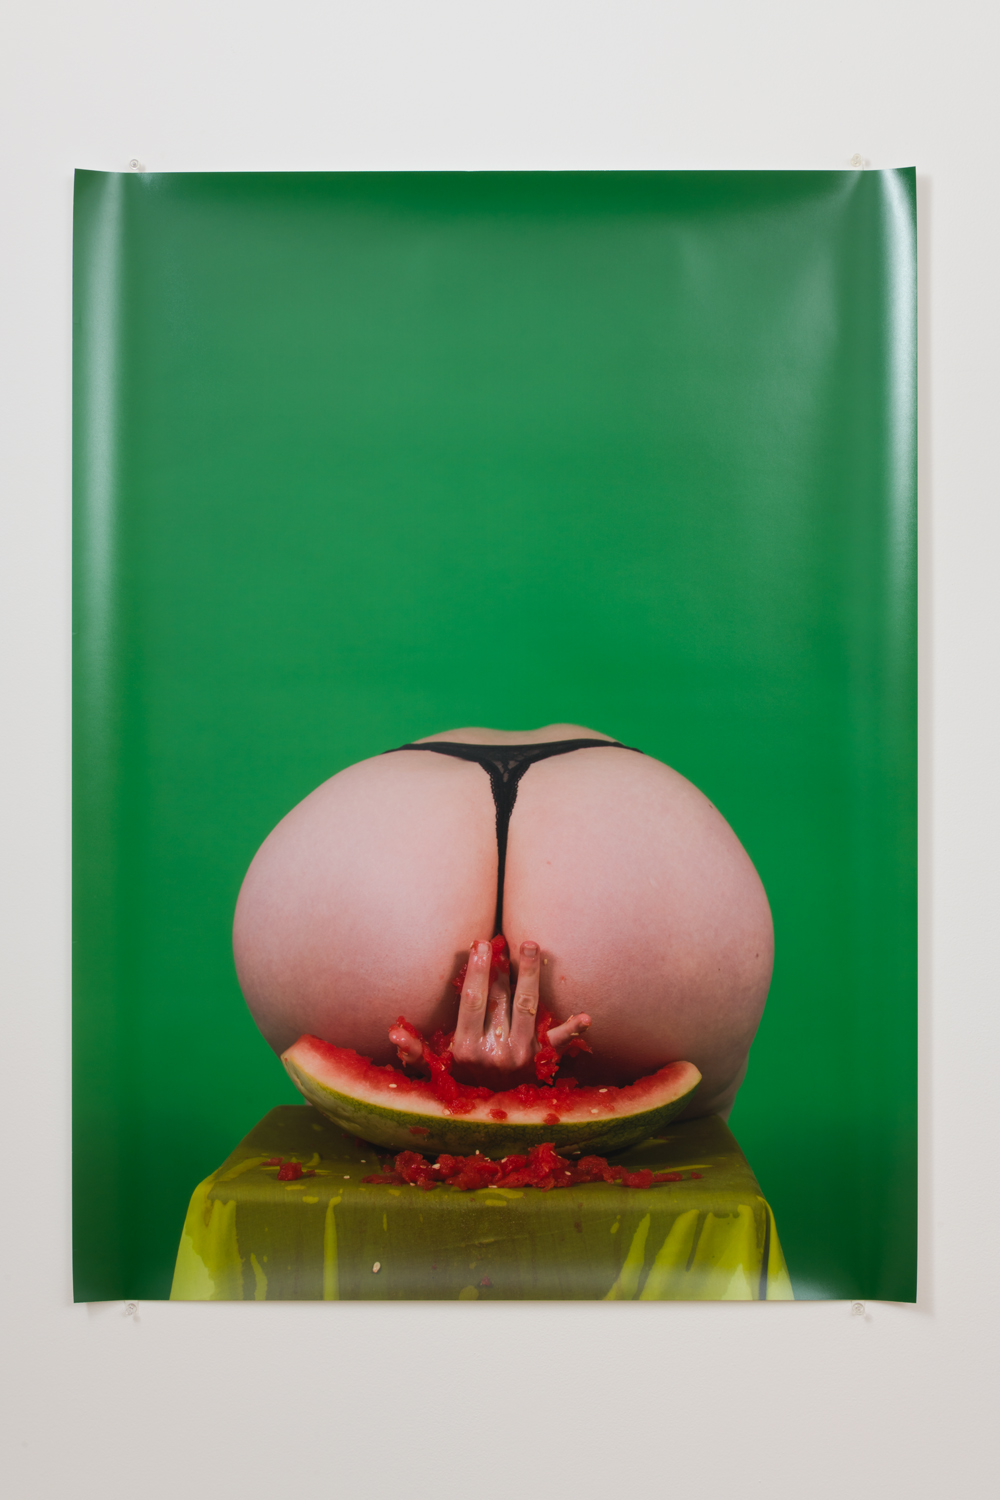 Amanda Alfieri  Feed da Booty: Watermelon,  2016 digital print Edition of 5 + 1AP 40 x 30 in.